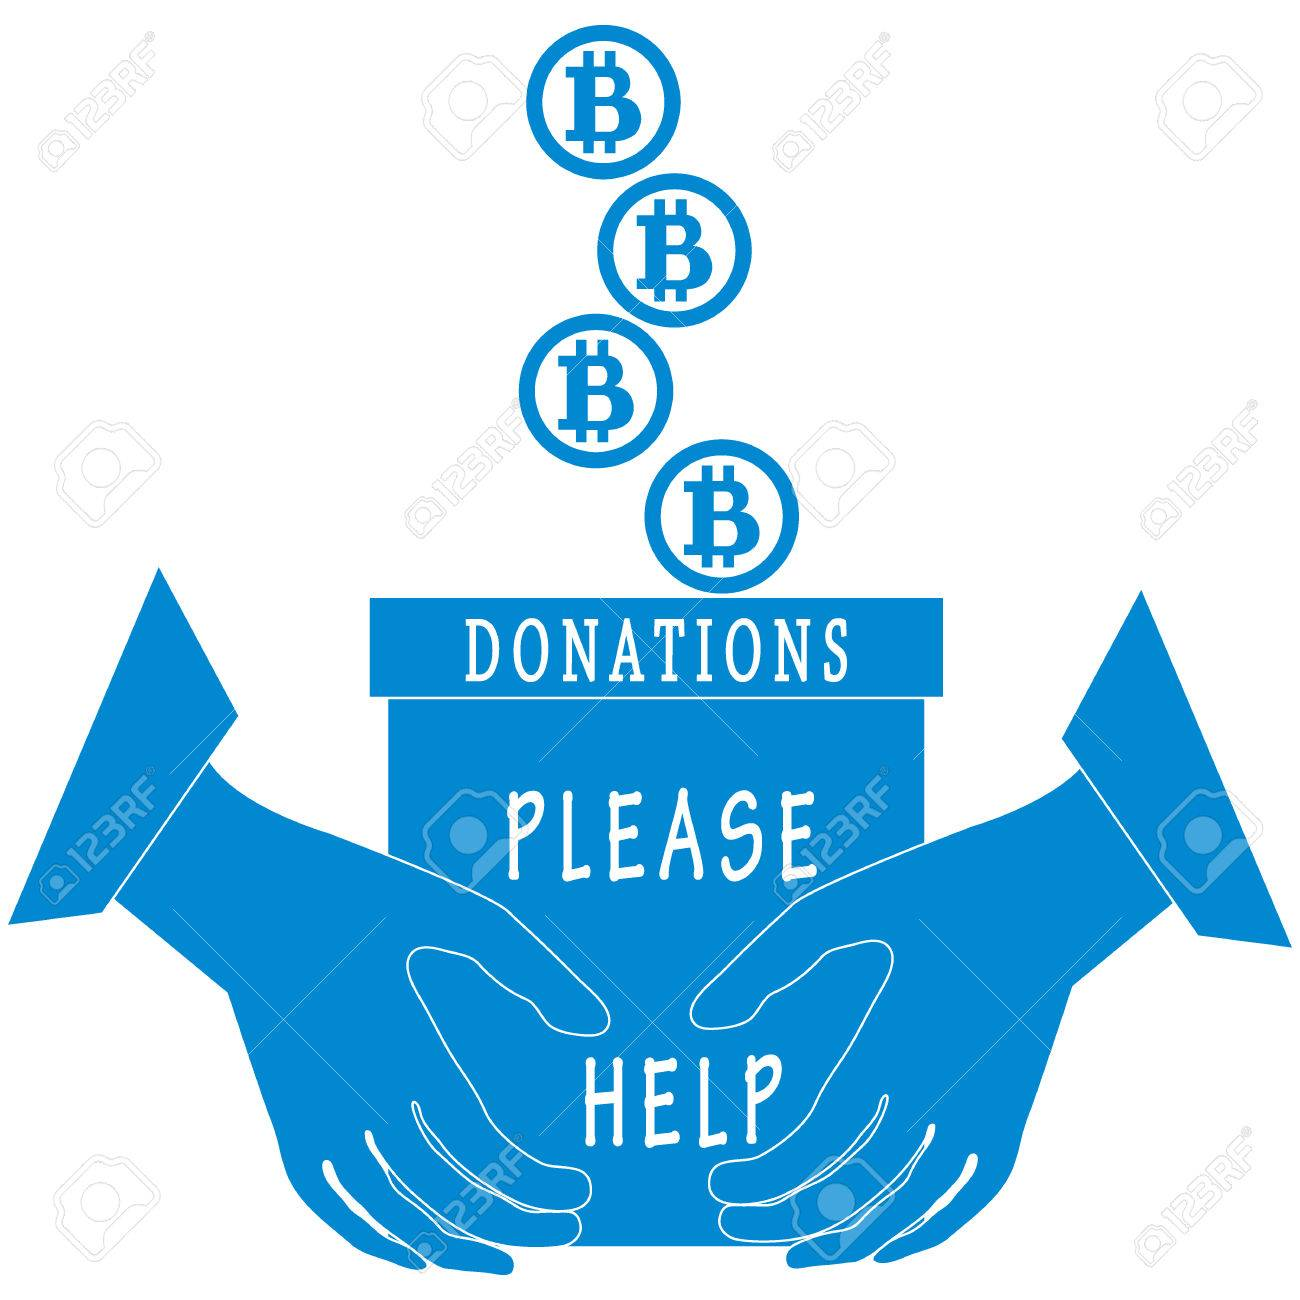 stylized icon calling to make a donation bitcoins are poured